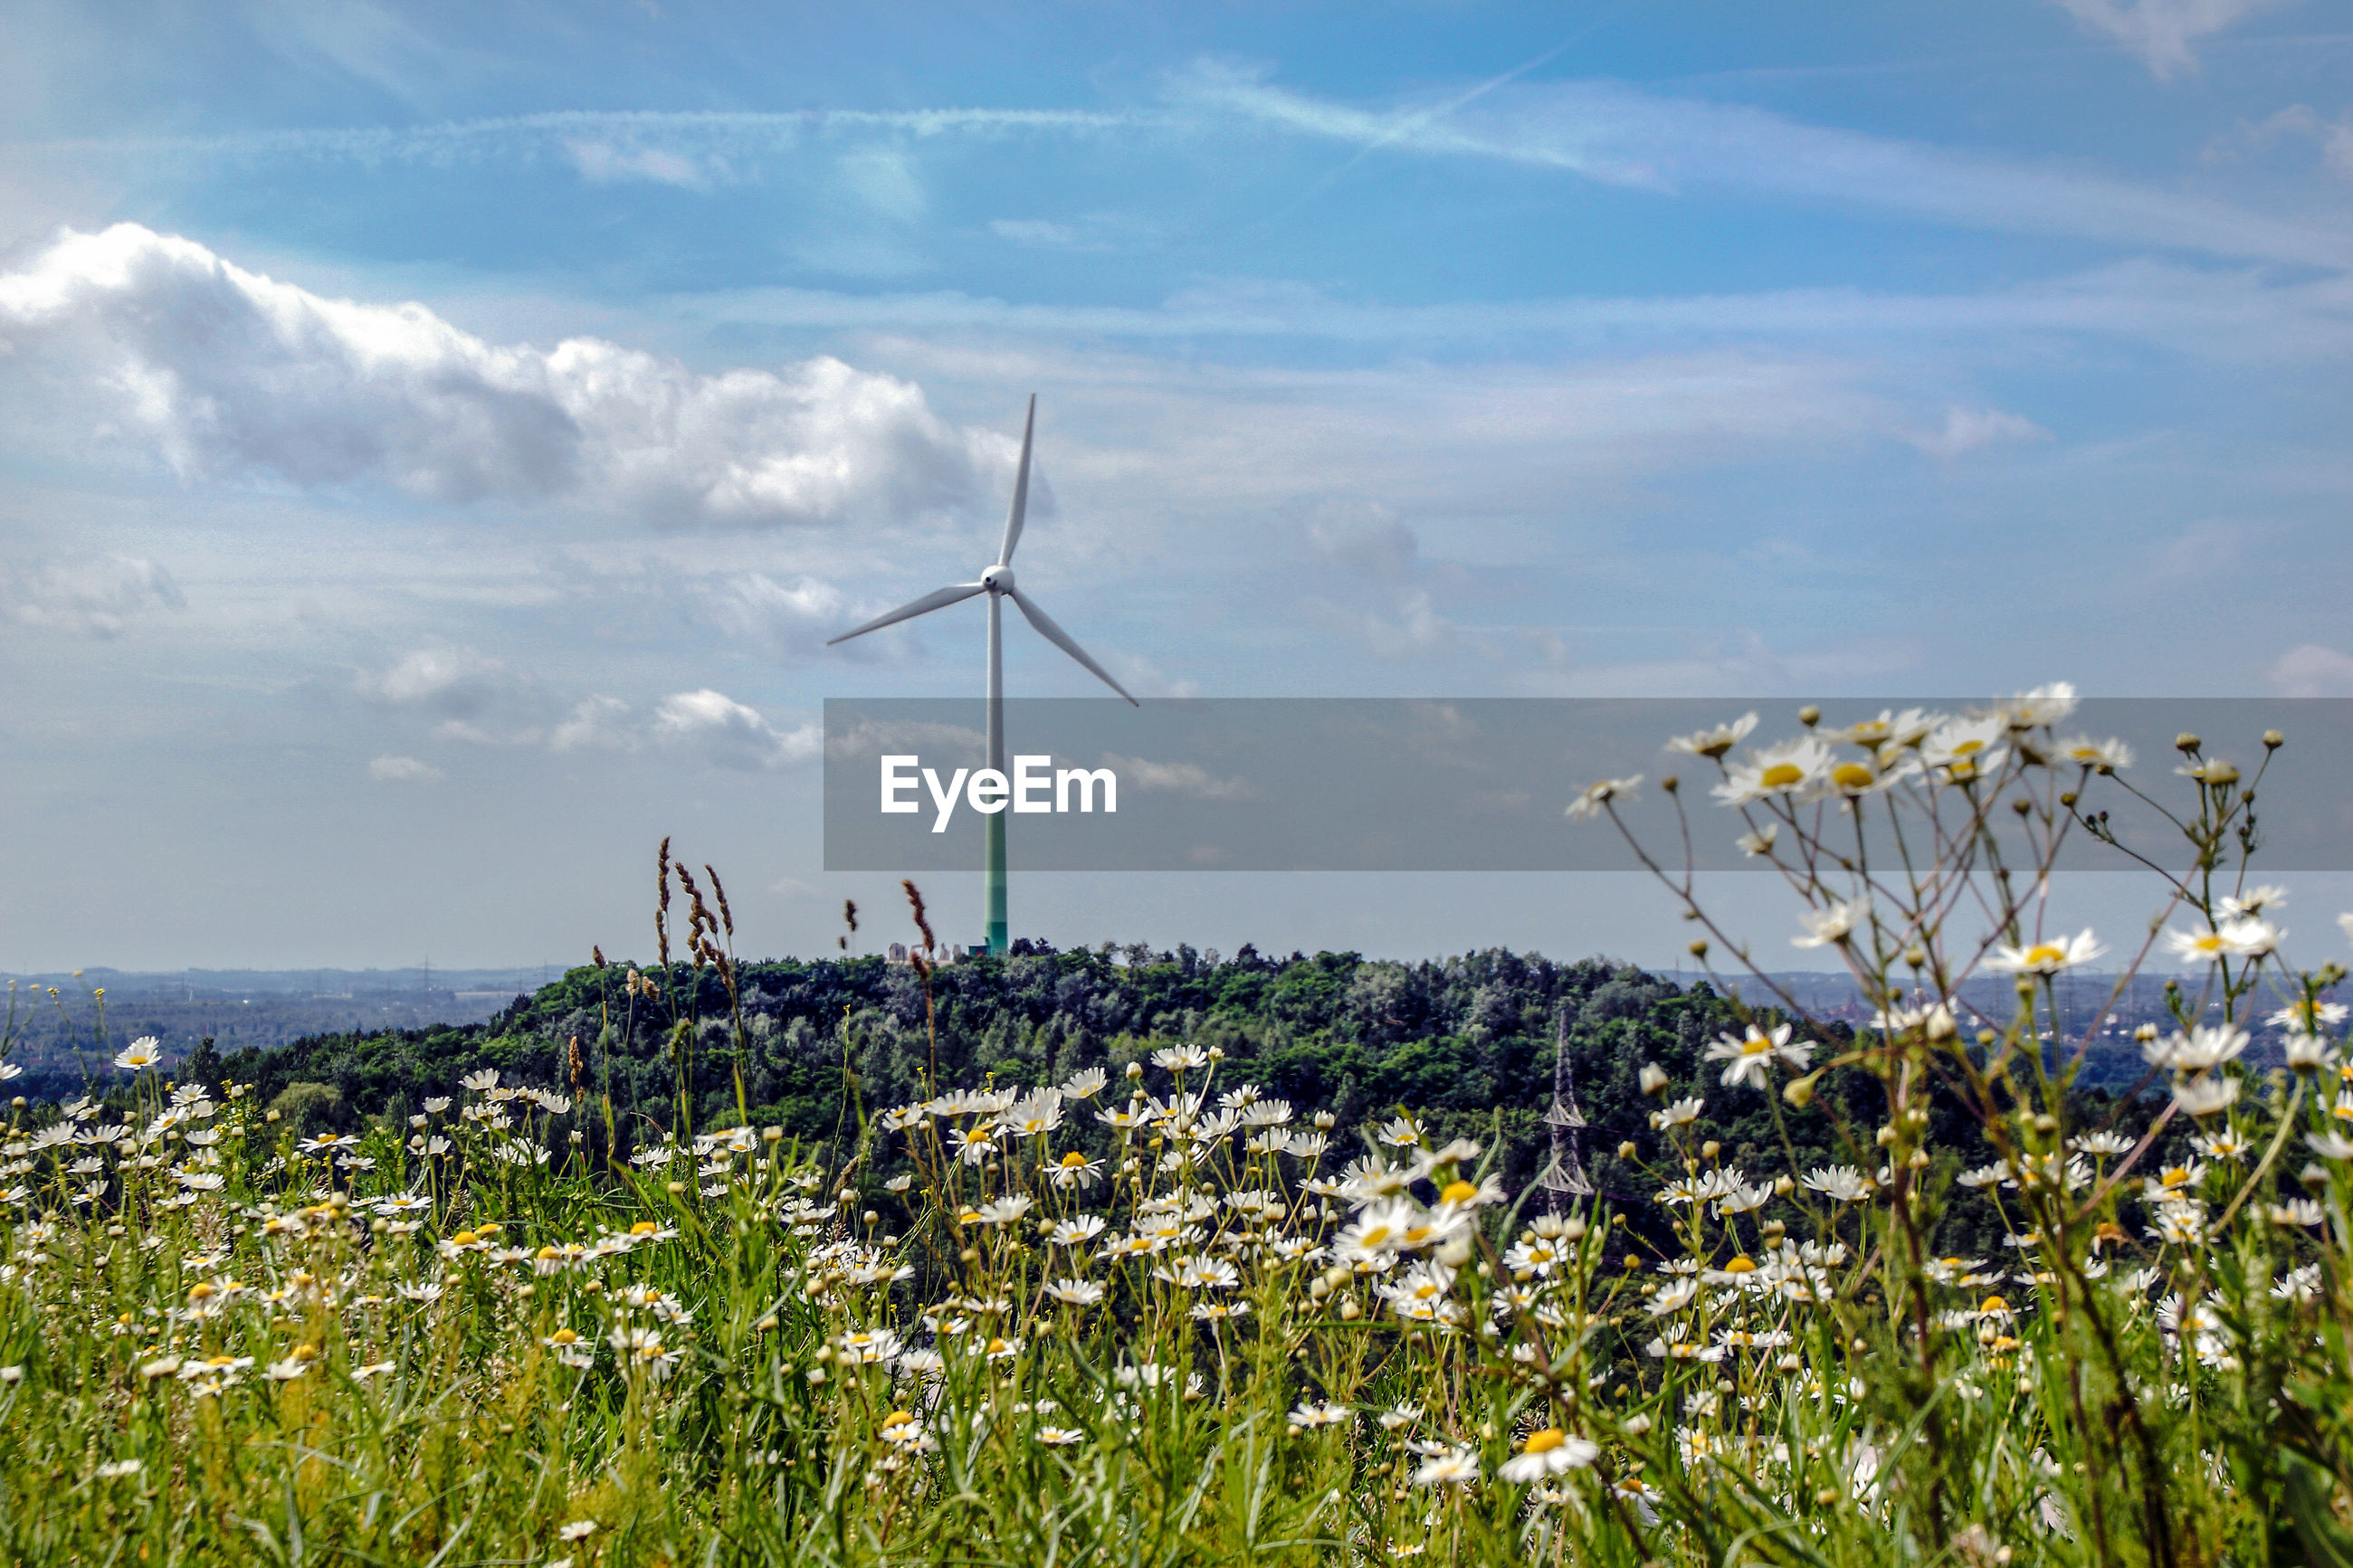 Plants growing on field against sky, wind turbine